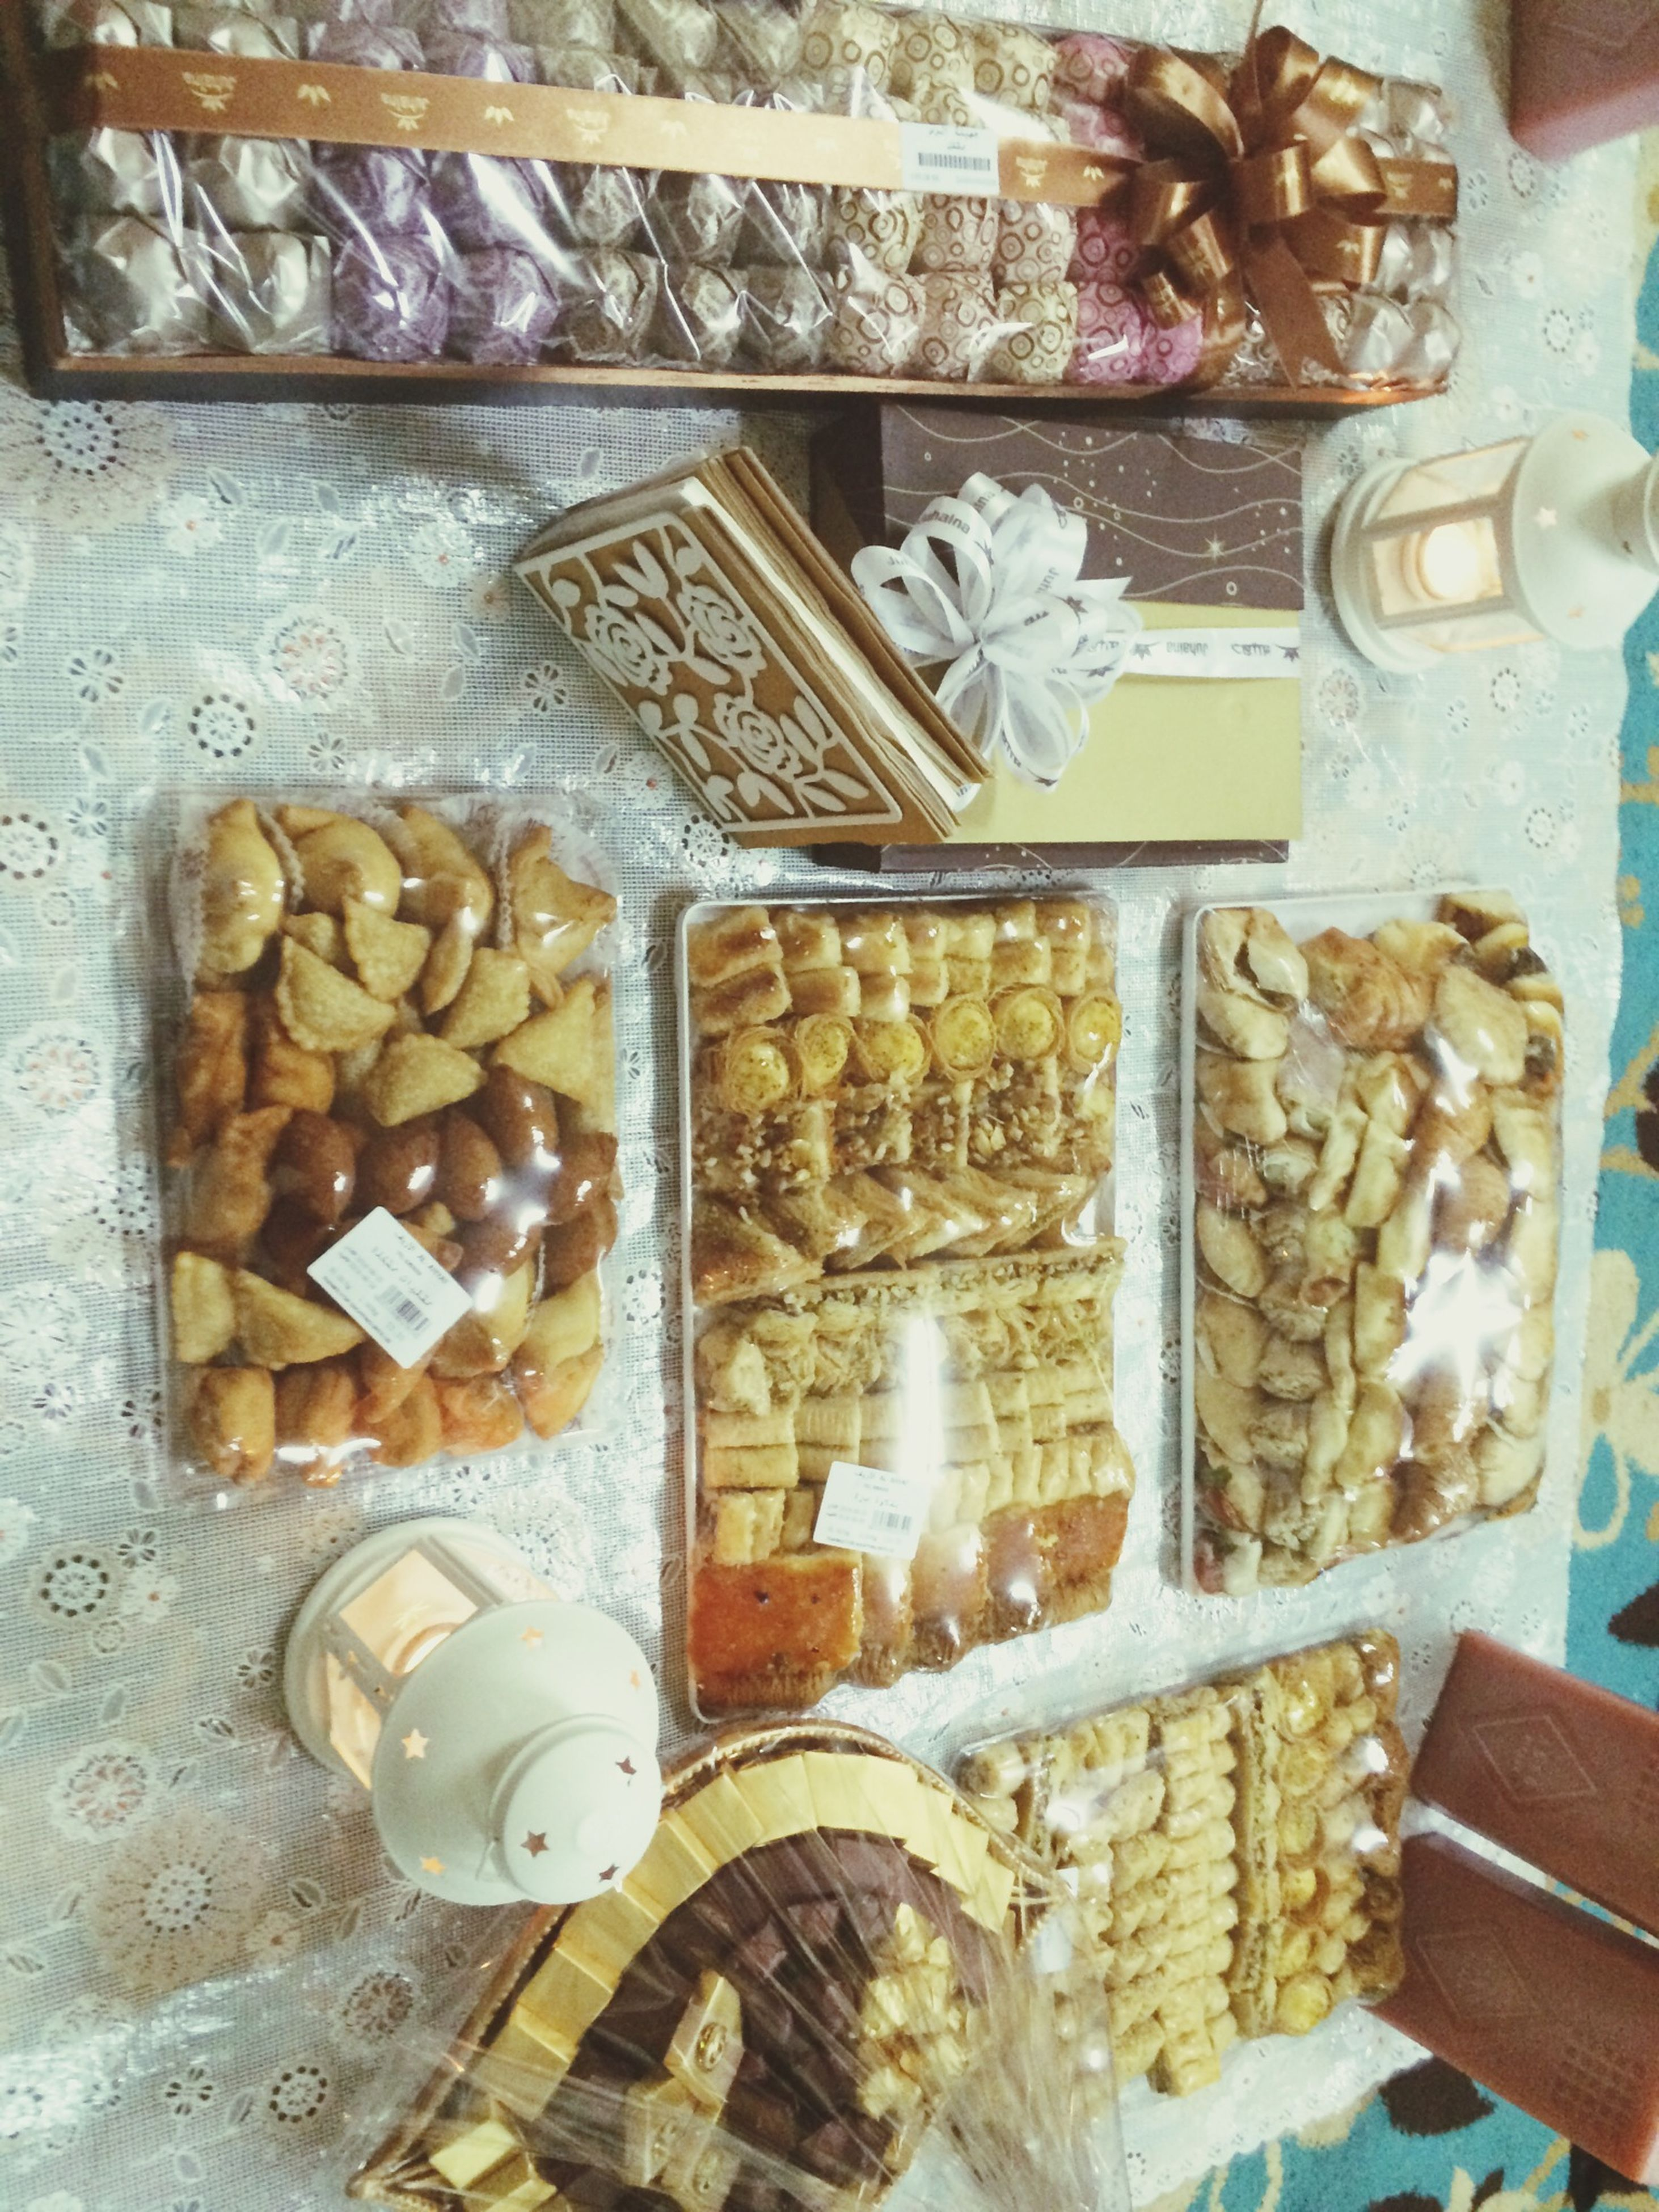 indoors, still life, large group of objects, abundance, variation, table, food and drink, wood - material, for sale, retail, food, text, high angle view, choice, arrangement, no people, close-up, stack, collection, art and craft